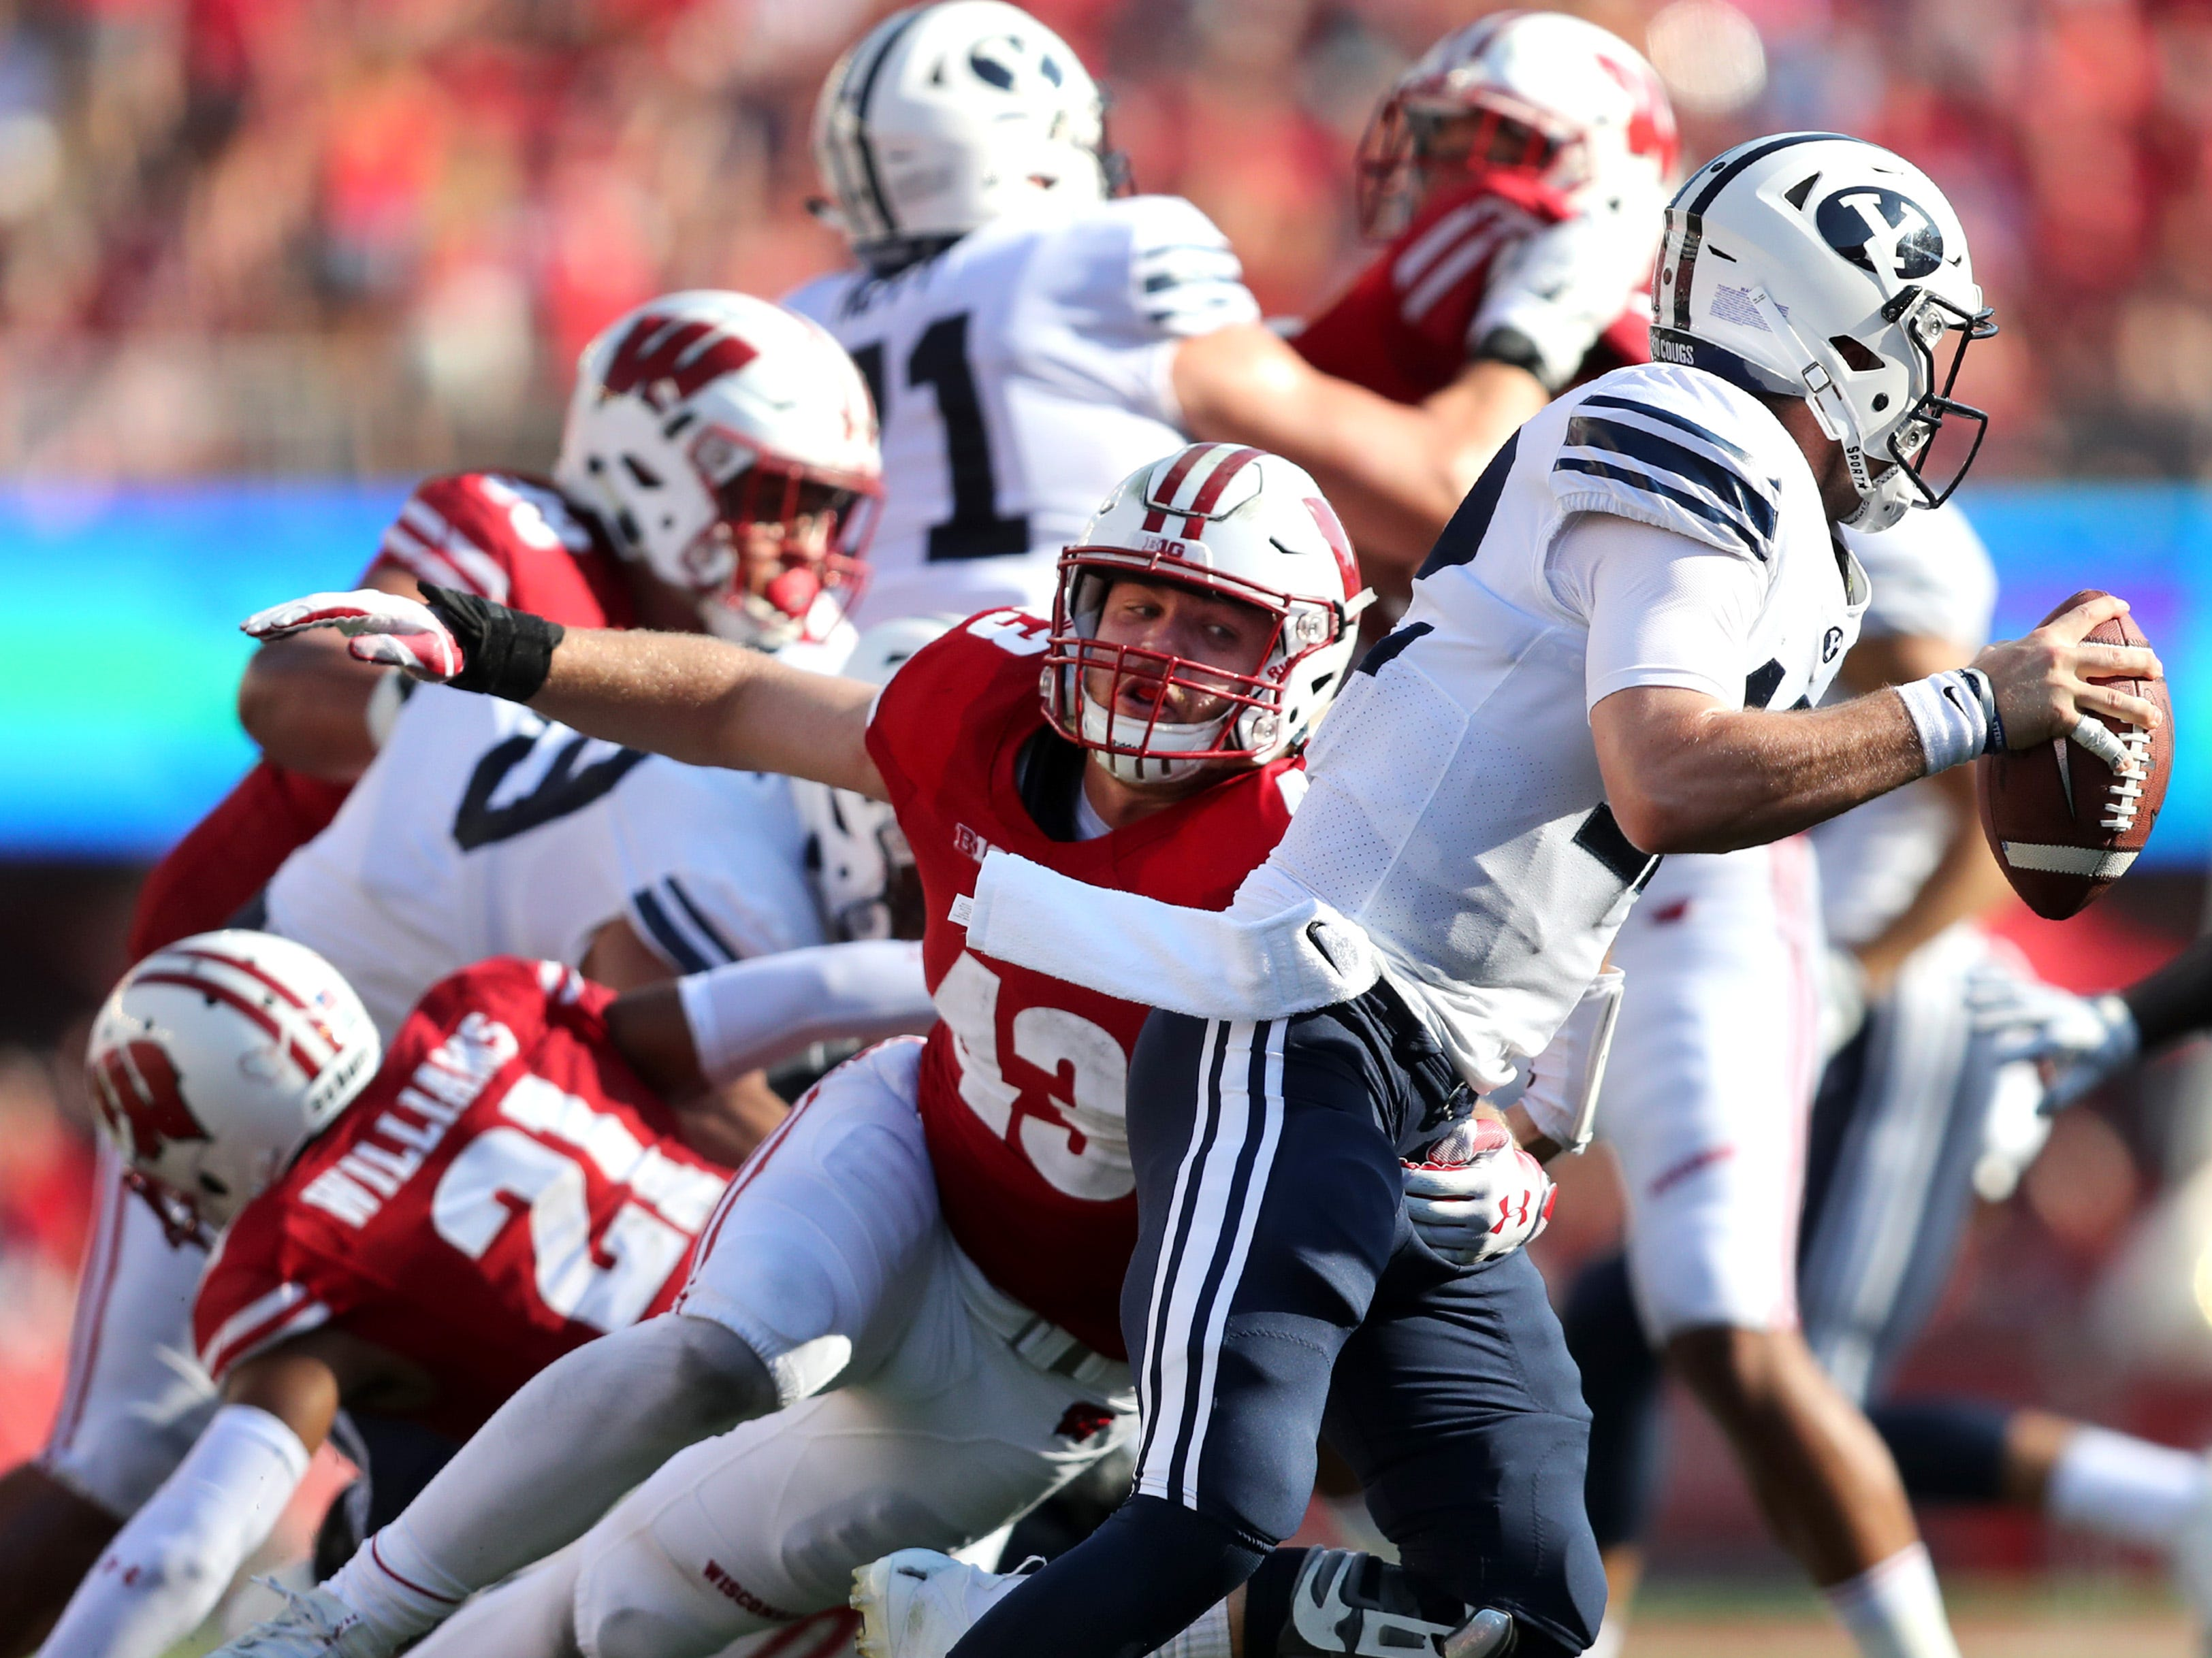 Wisconsin Badgers safety Evan Bondoc (13) tries to wrap up Brigham Young Cougars quarterback Tanner Mangum (12) Saturday, Sept. 15, 2018, at Camp Randall Stadium in Madison, Wis.Danny Damiani/USA TODAY NETWORK-Wisconsin